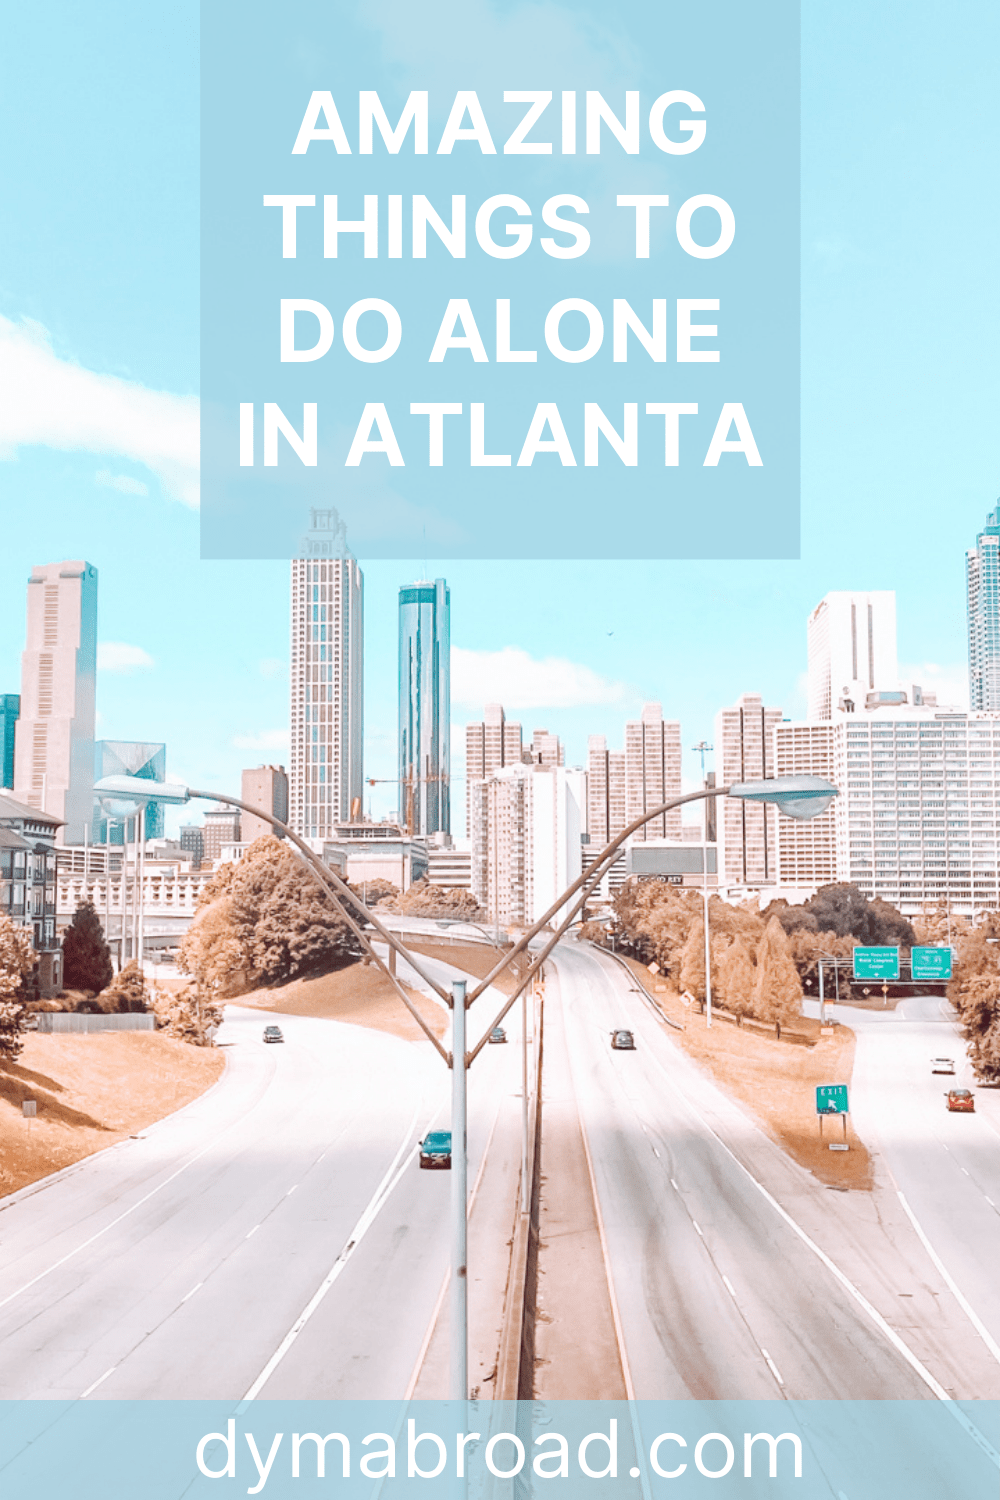 Things to do alone in Atlanta Pinterest image